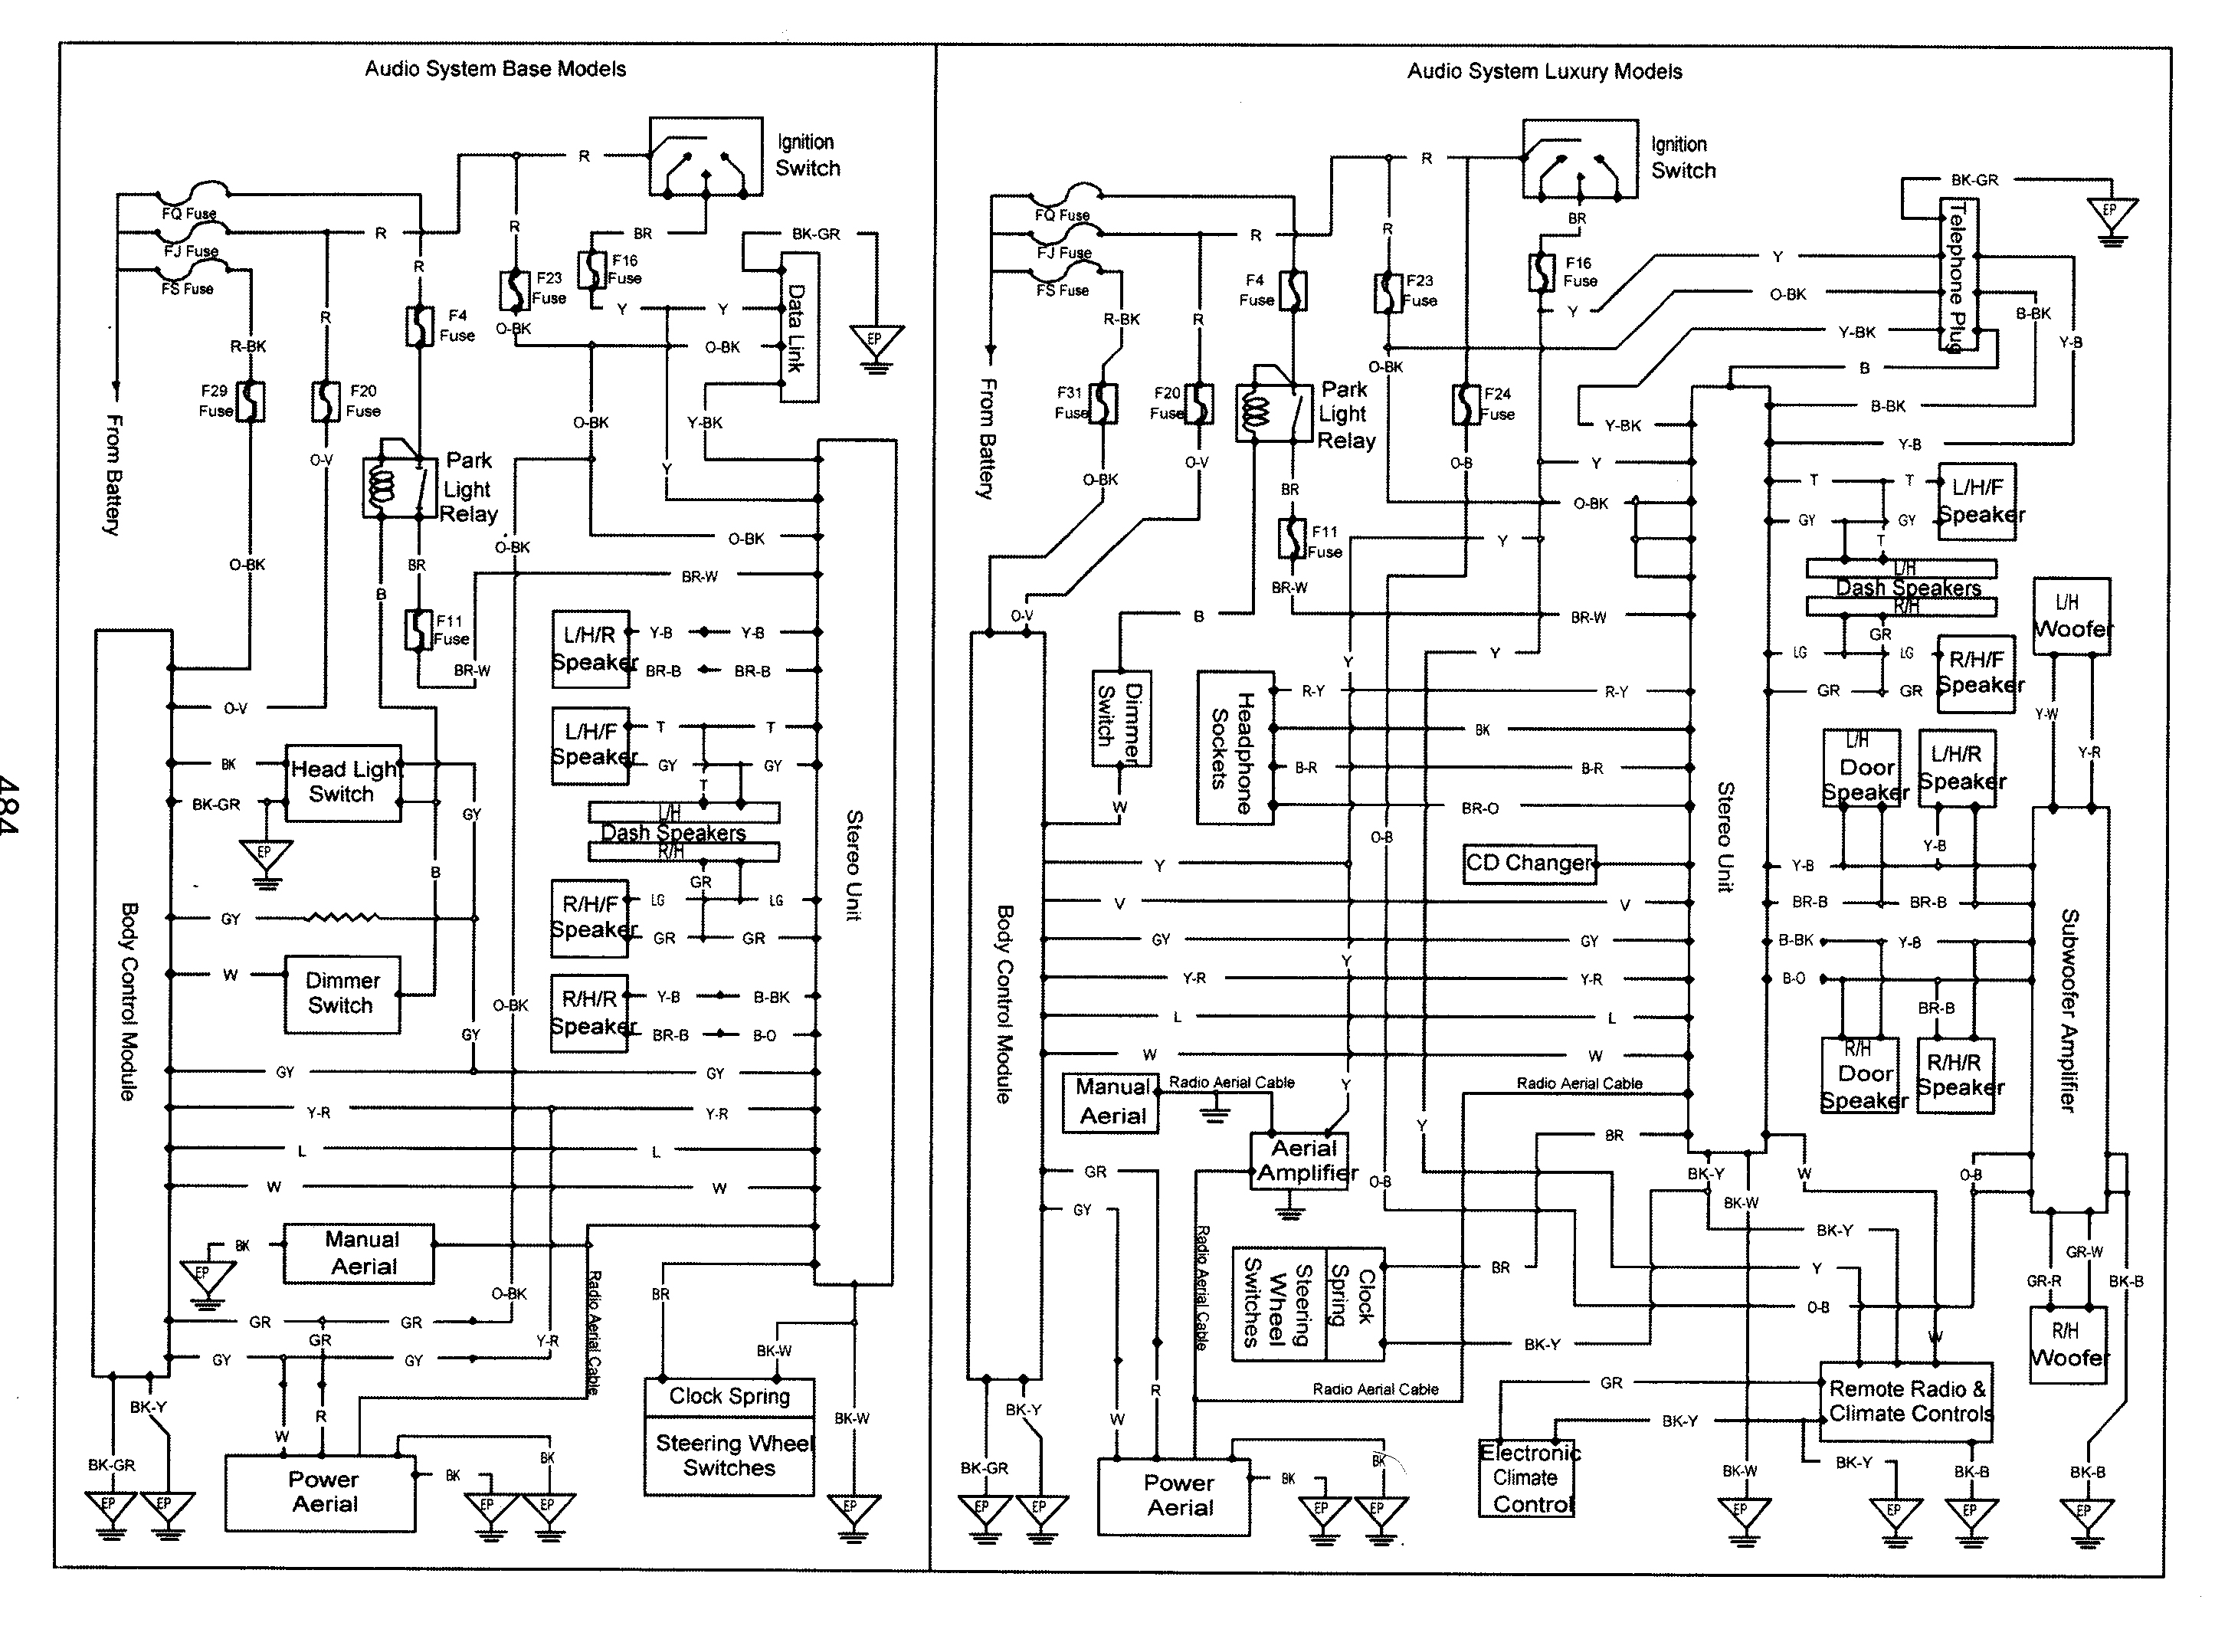 IMG_009?resized665%2C496 vz wiring diagram efcaviation com vy ls1 wiring diagram at creativeand.co